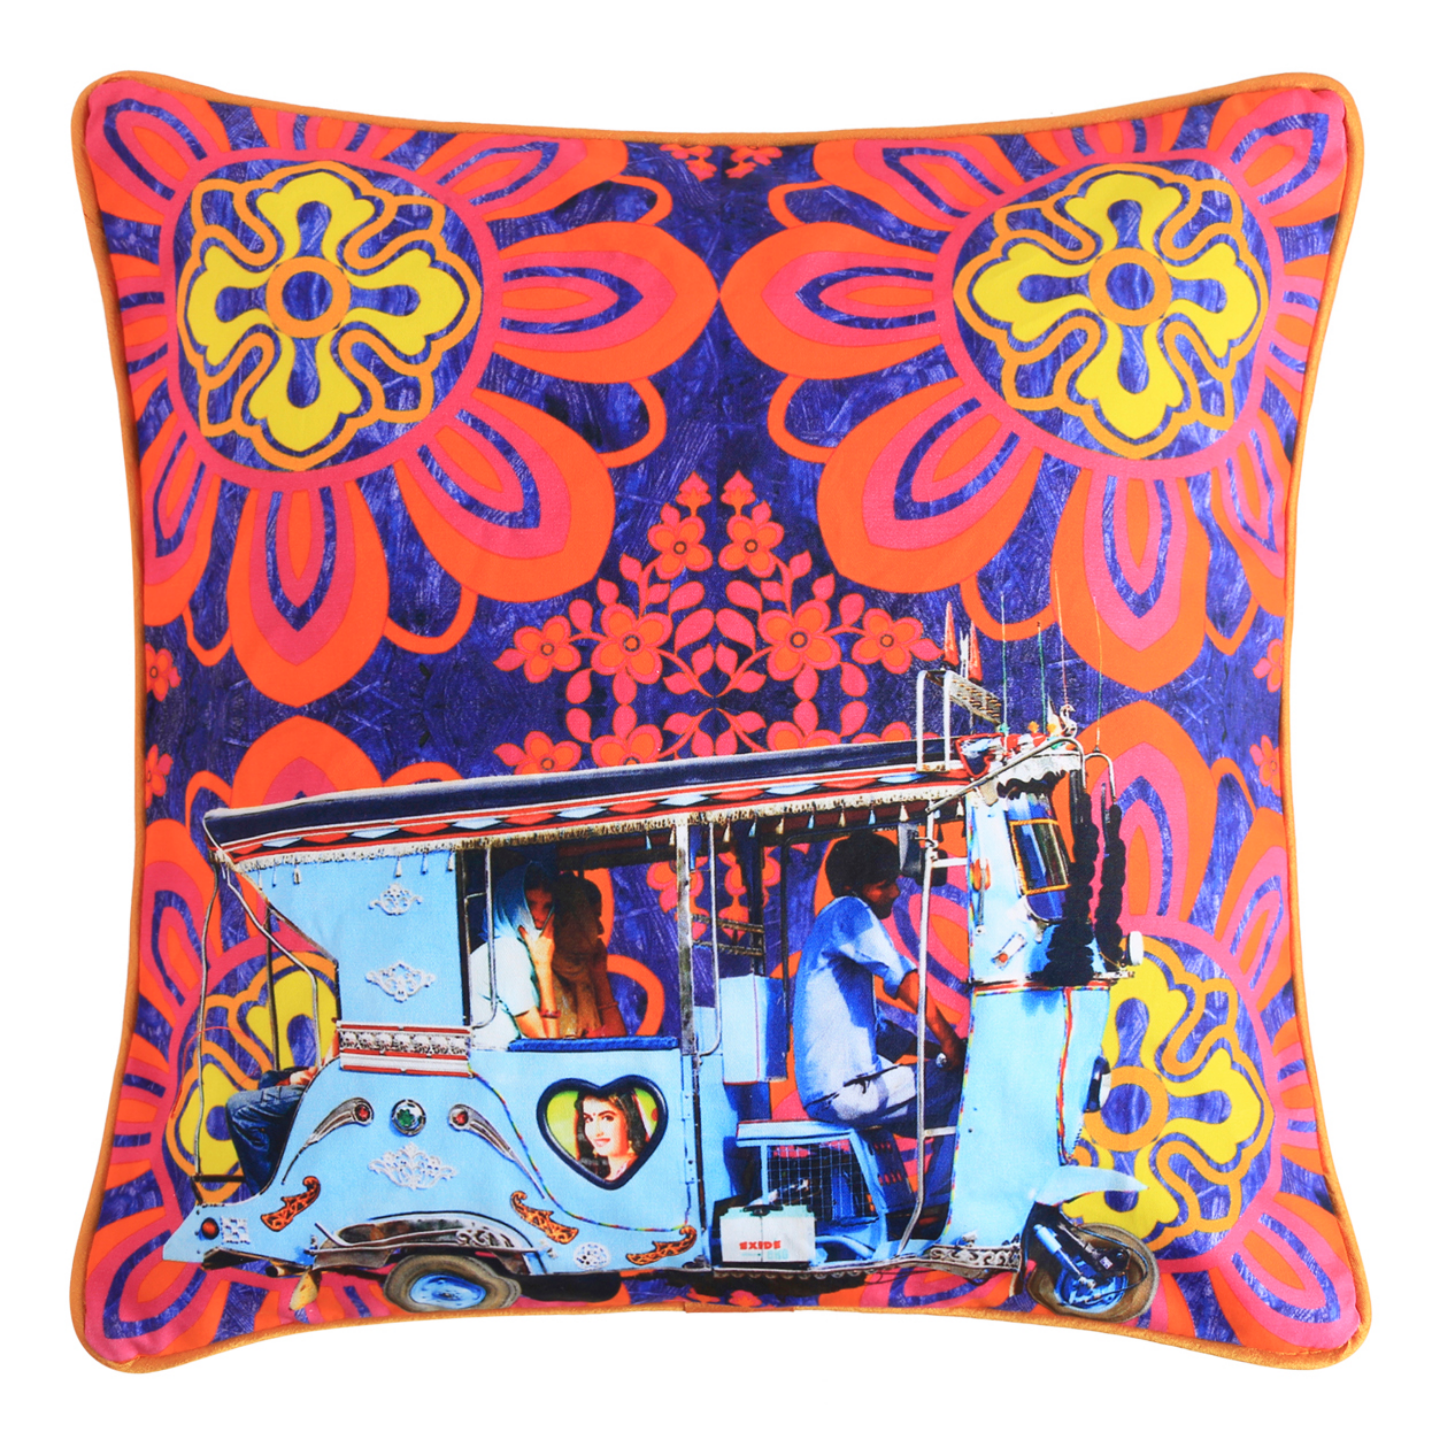 Sky Blue Taxi Glaze Cotton Cushion Cover 16x16 Inches